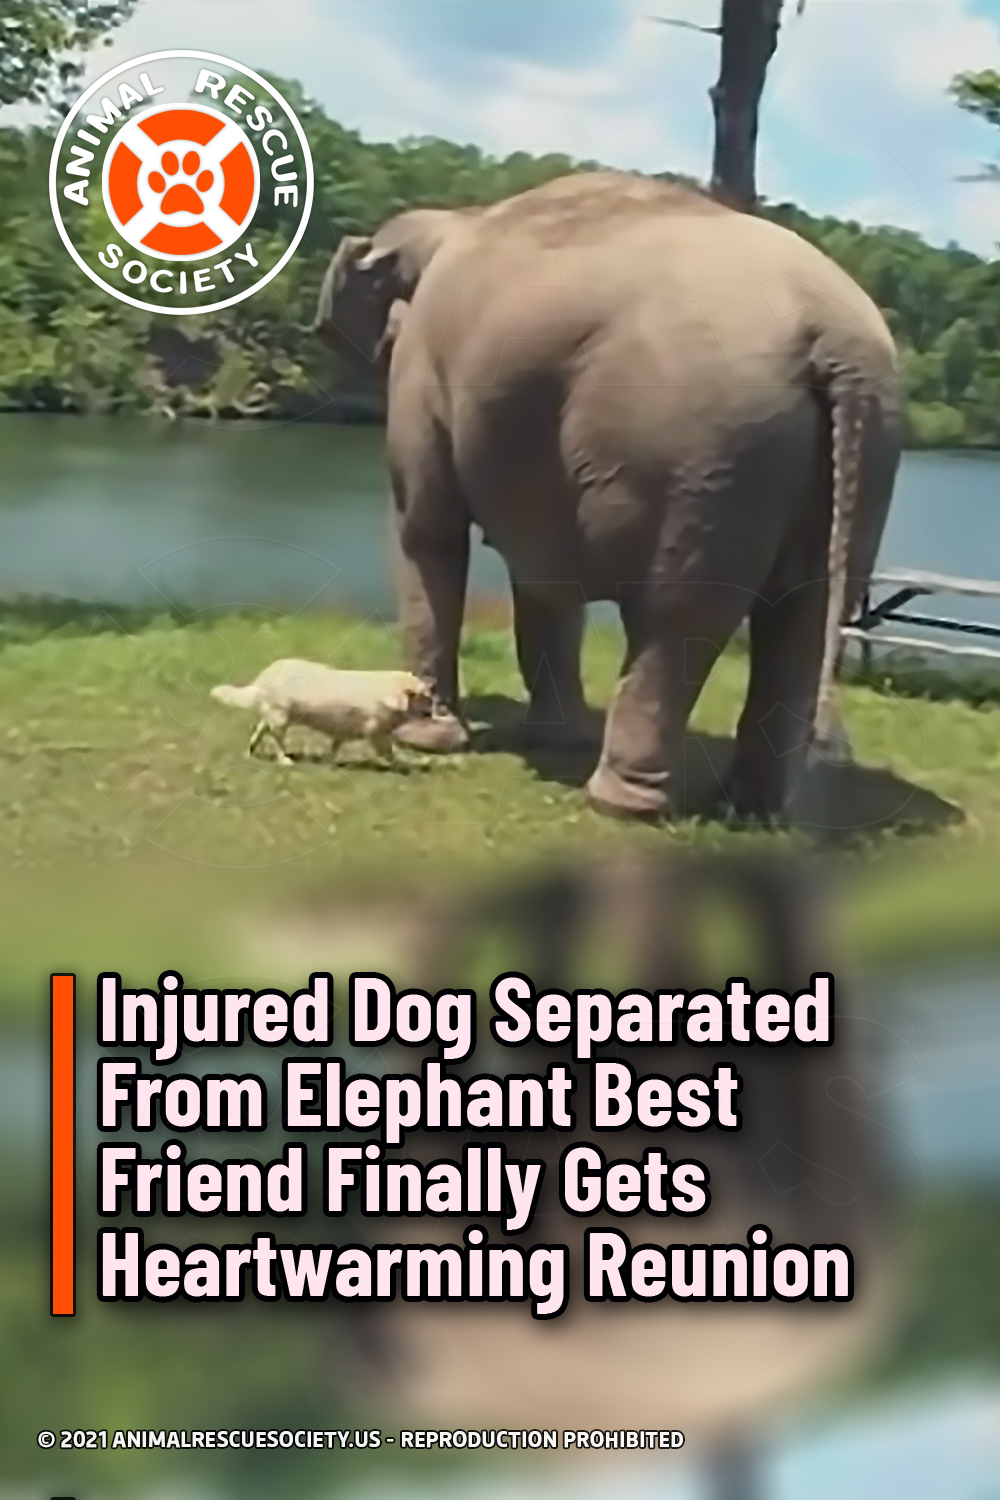 Injured Dog Separated From Elephant Best Friend Finally Gets Heartwarming Reunion